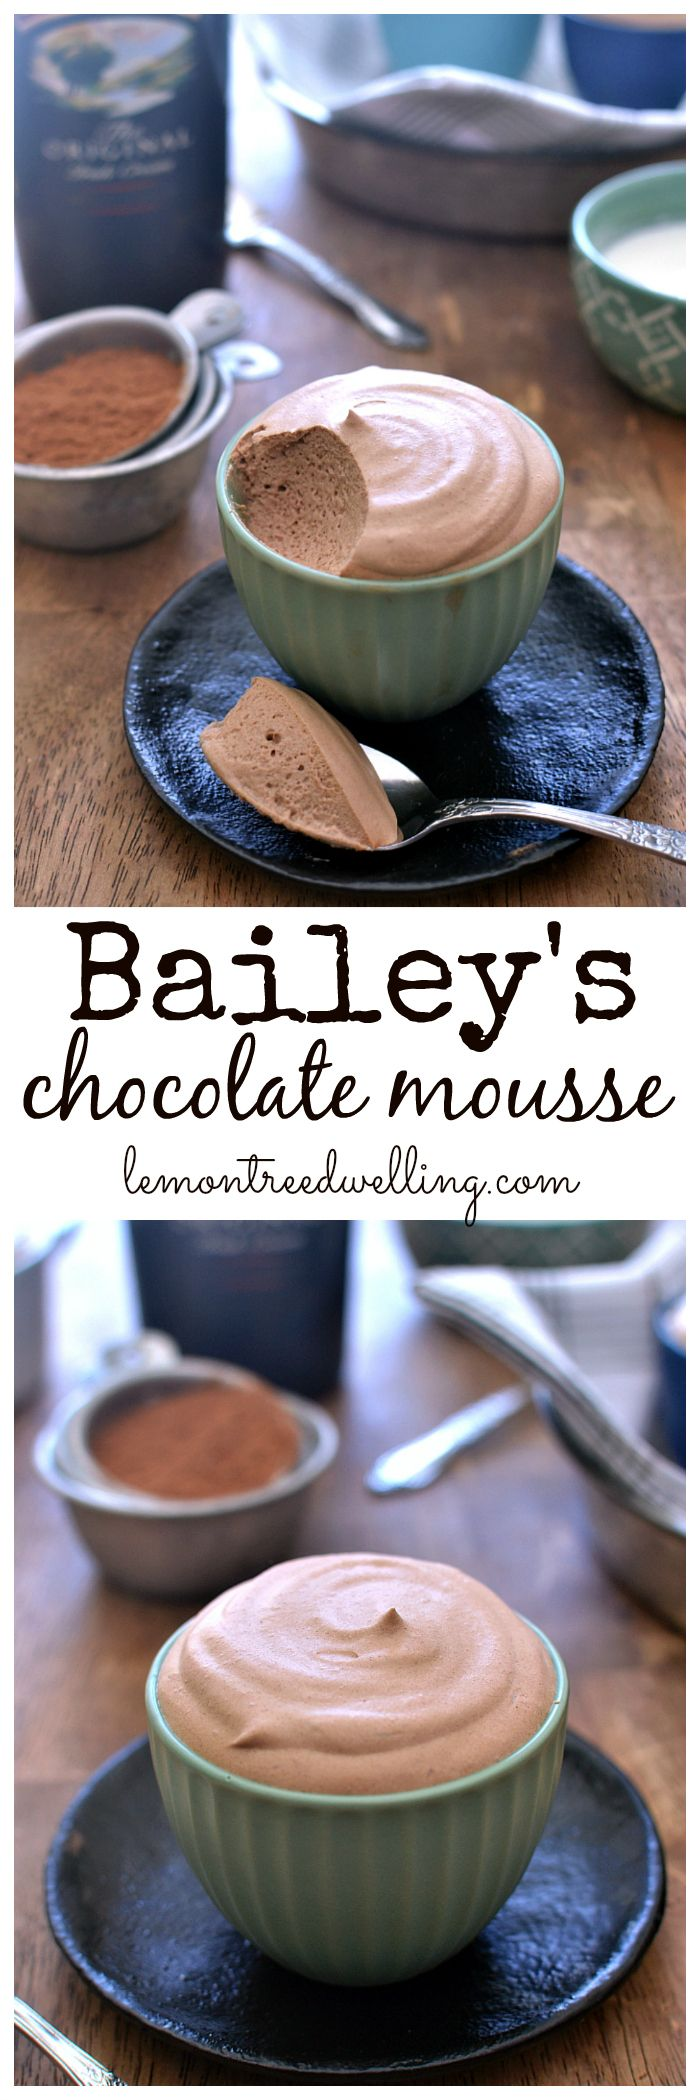 Bailey Cabinet Company Baileys Chocolate Mousse Recipe Irish Chocolate Mousse